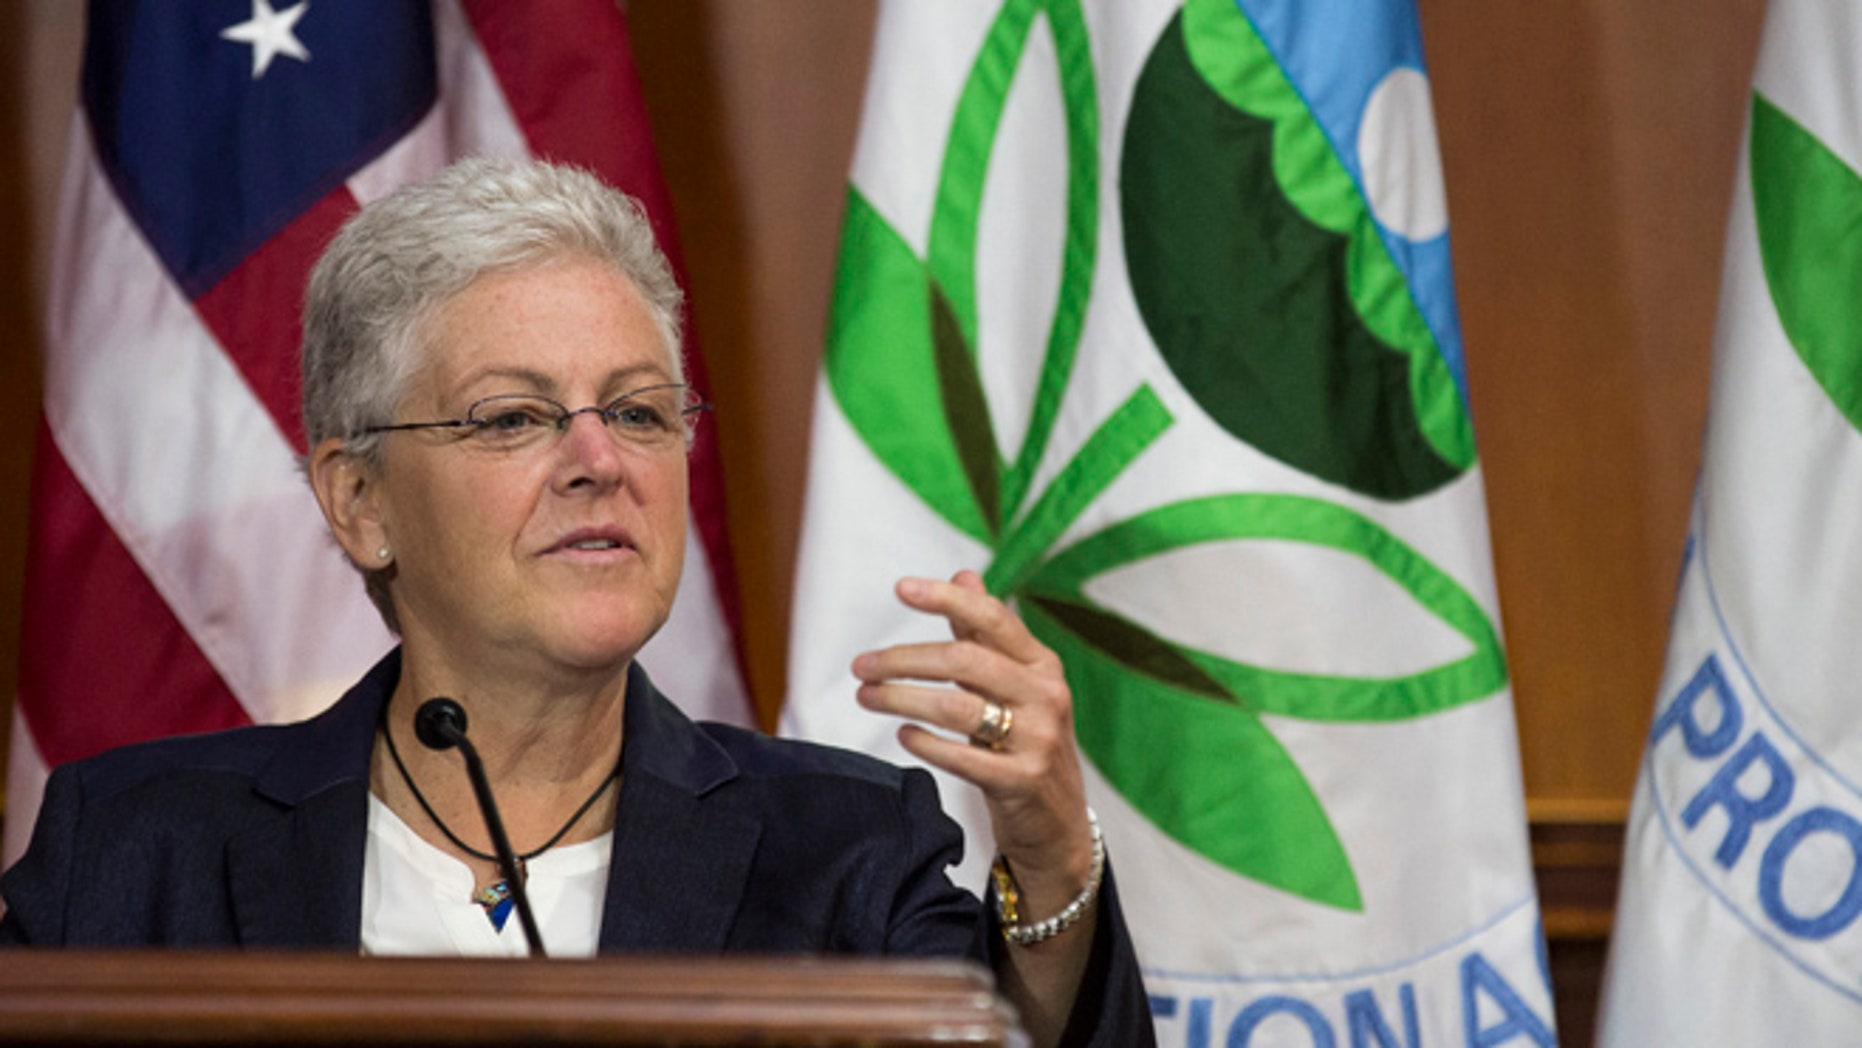 FILE: June 2, 2014: EPA Administrator Gina McCarthy at a news conference in Washington, D.C.